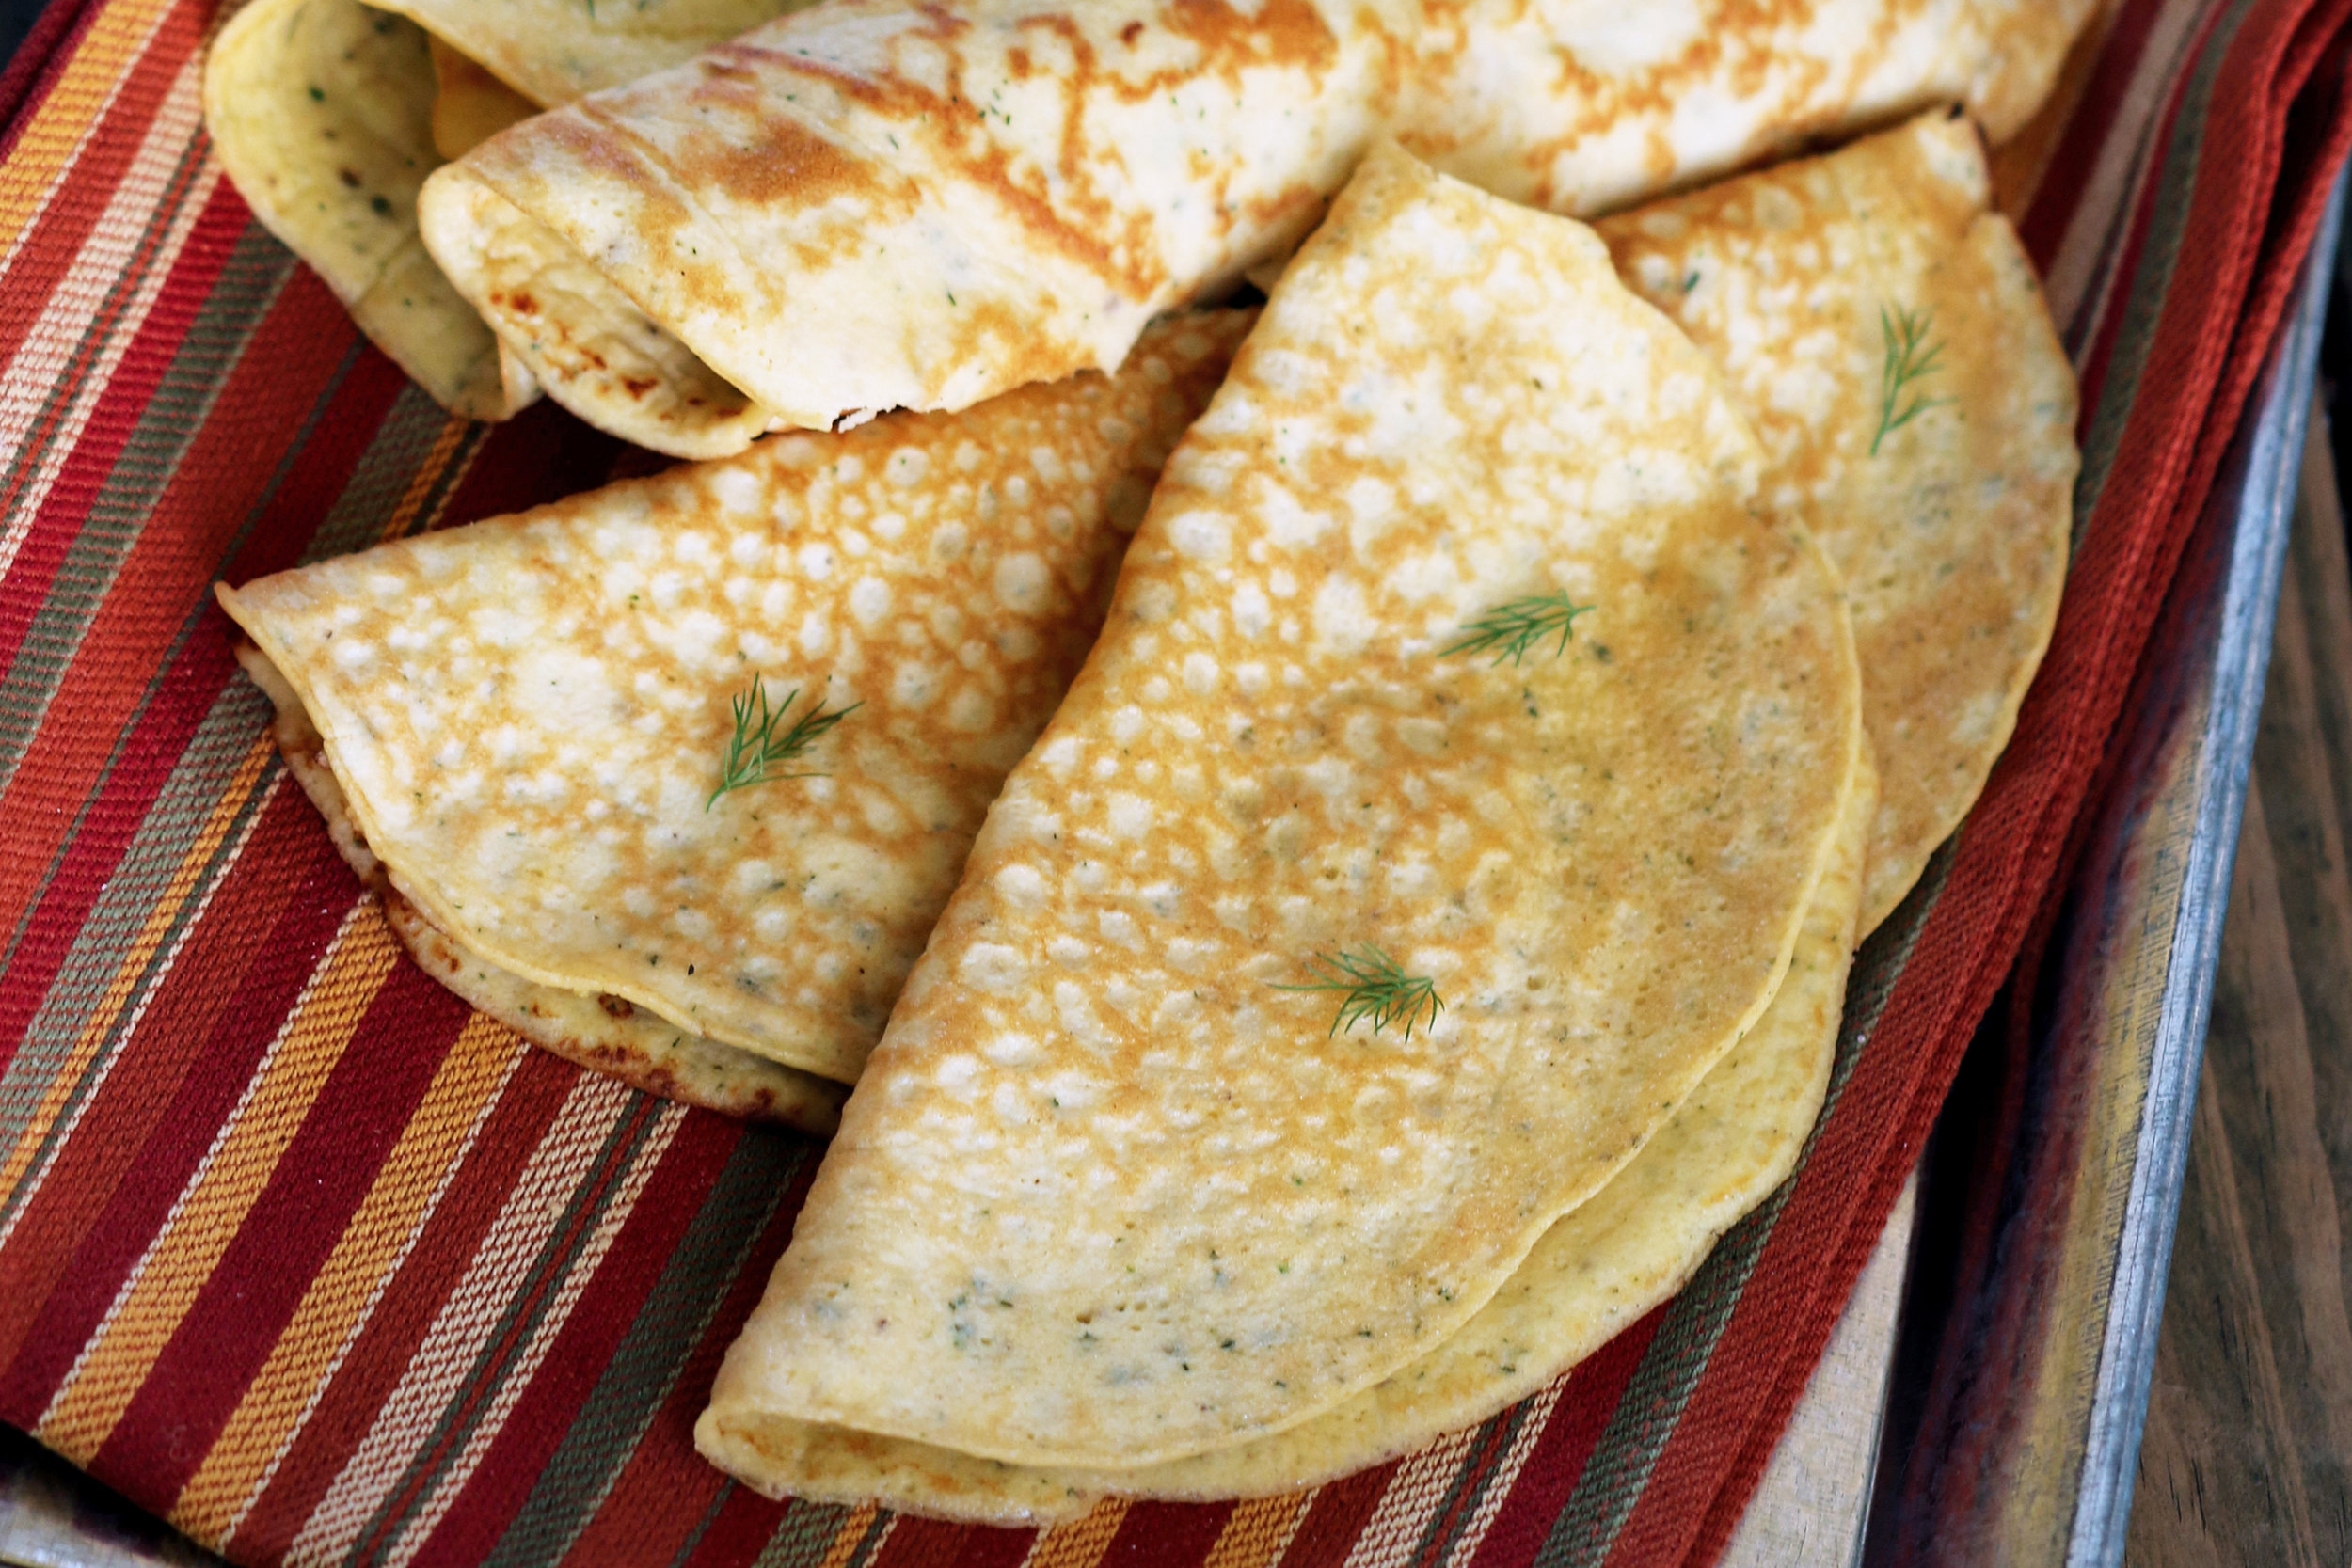 KETO SAVORY CREPES & TORTILLAS